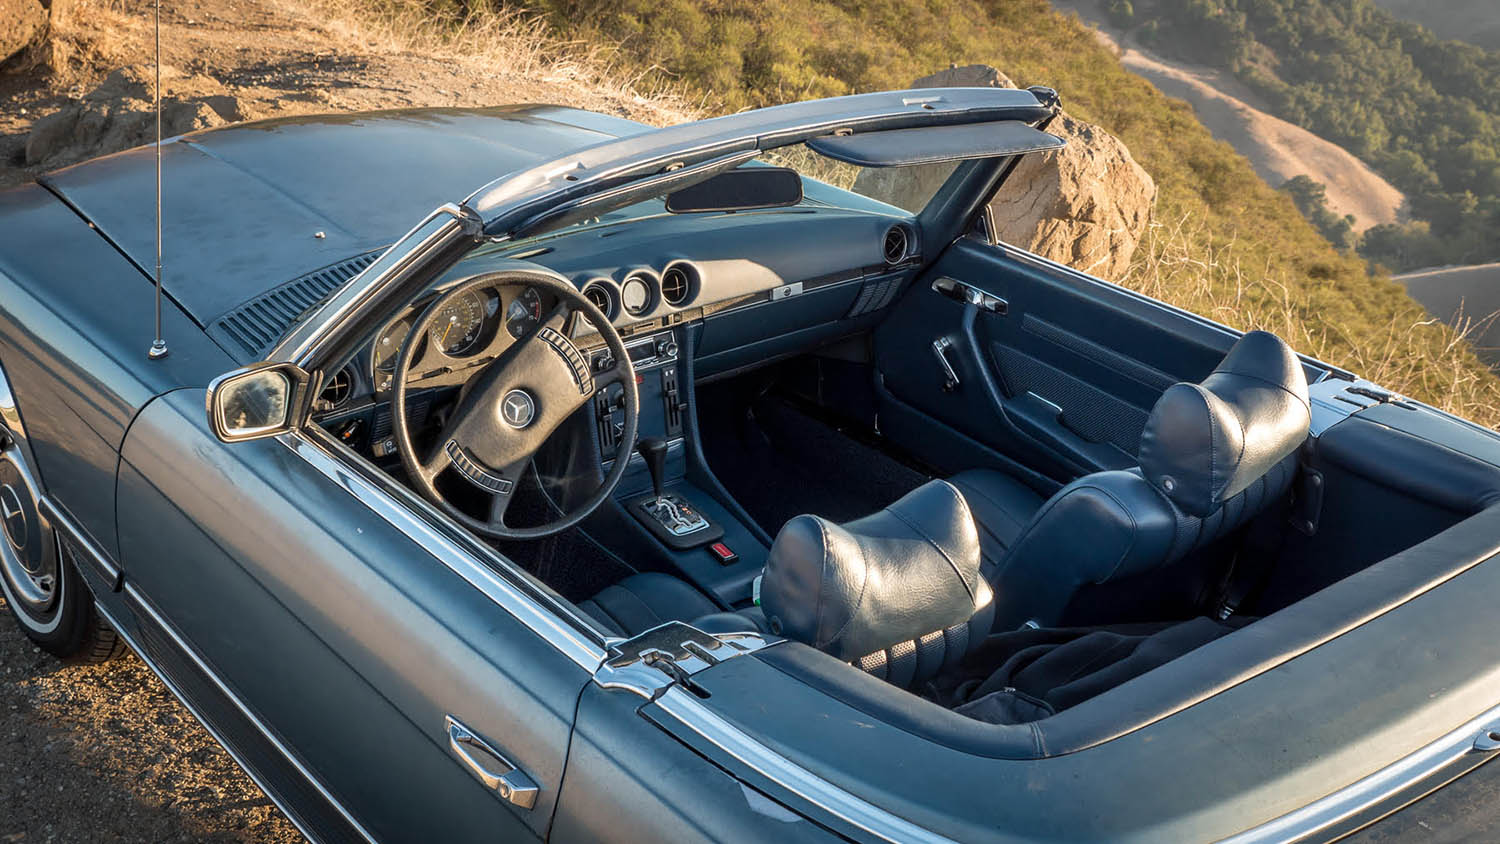 Rare 1972 Mercedes 350SL photographed by Will Crockett in Paso Robles, CA